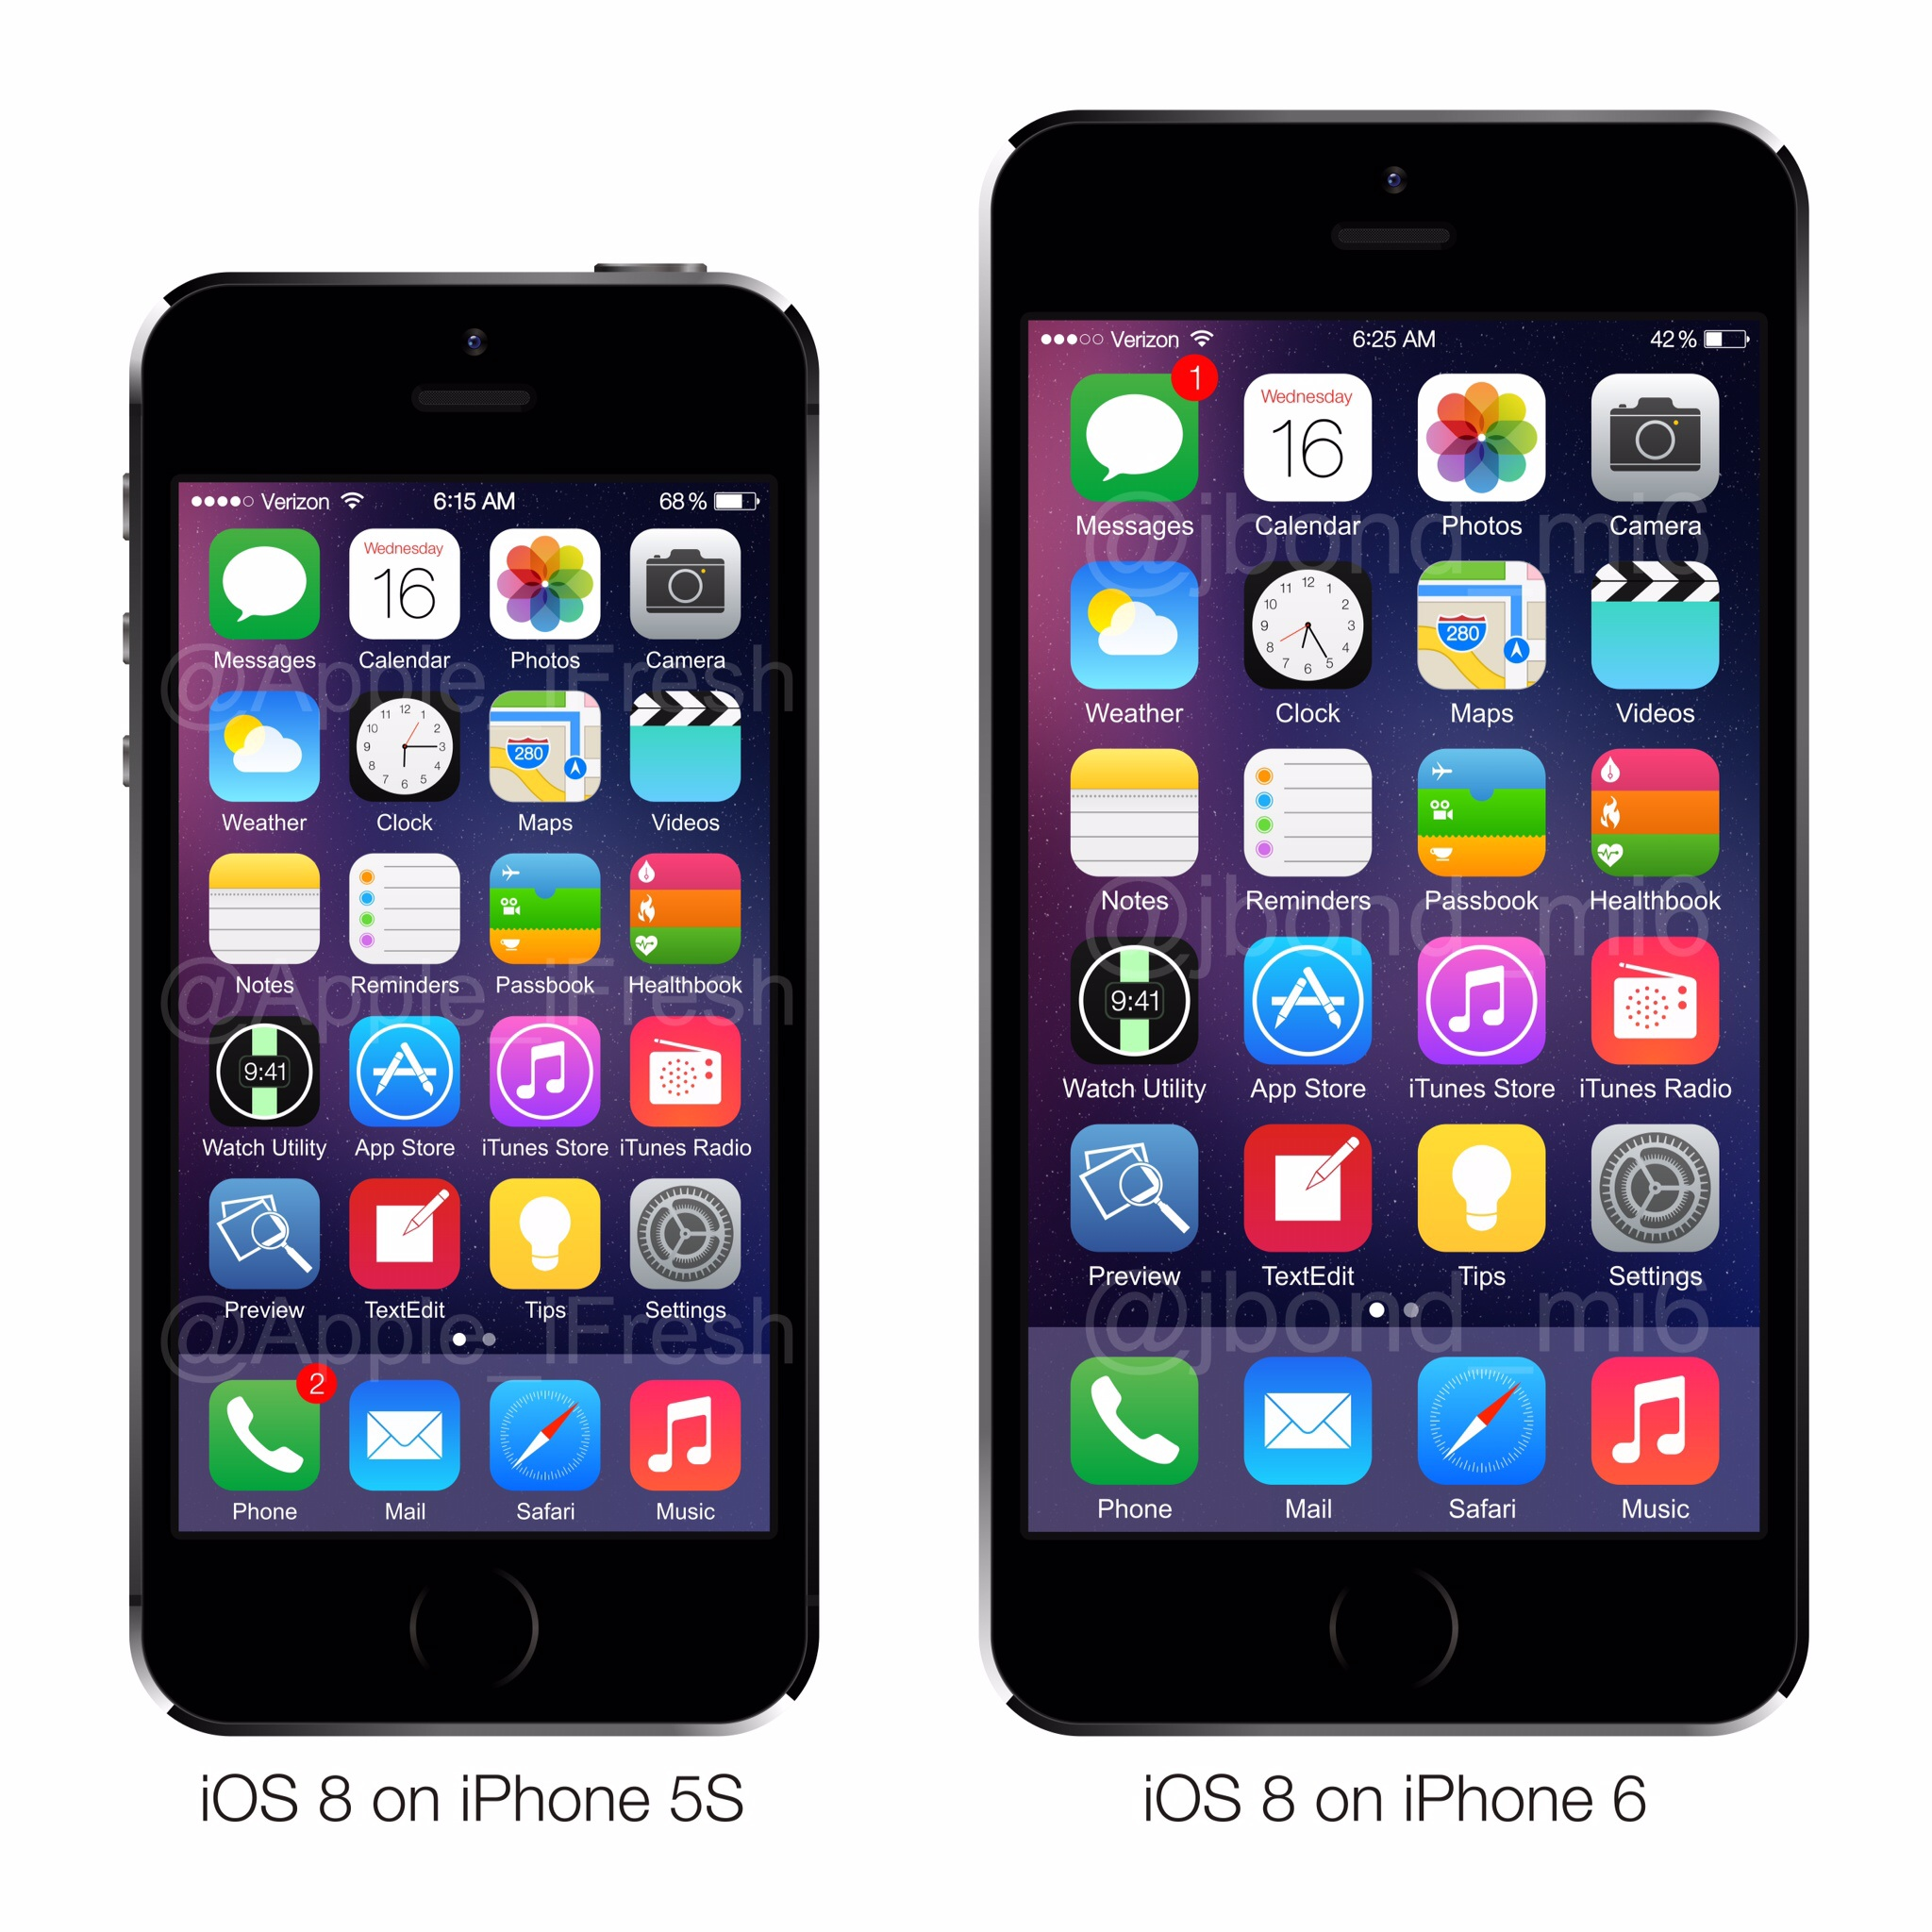 ios 8 on iphone 5s and iphone 6 9to5mac. Black Bedroom Furniture Sets. Home Design Ideas